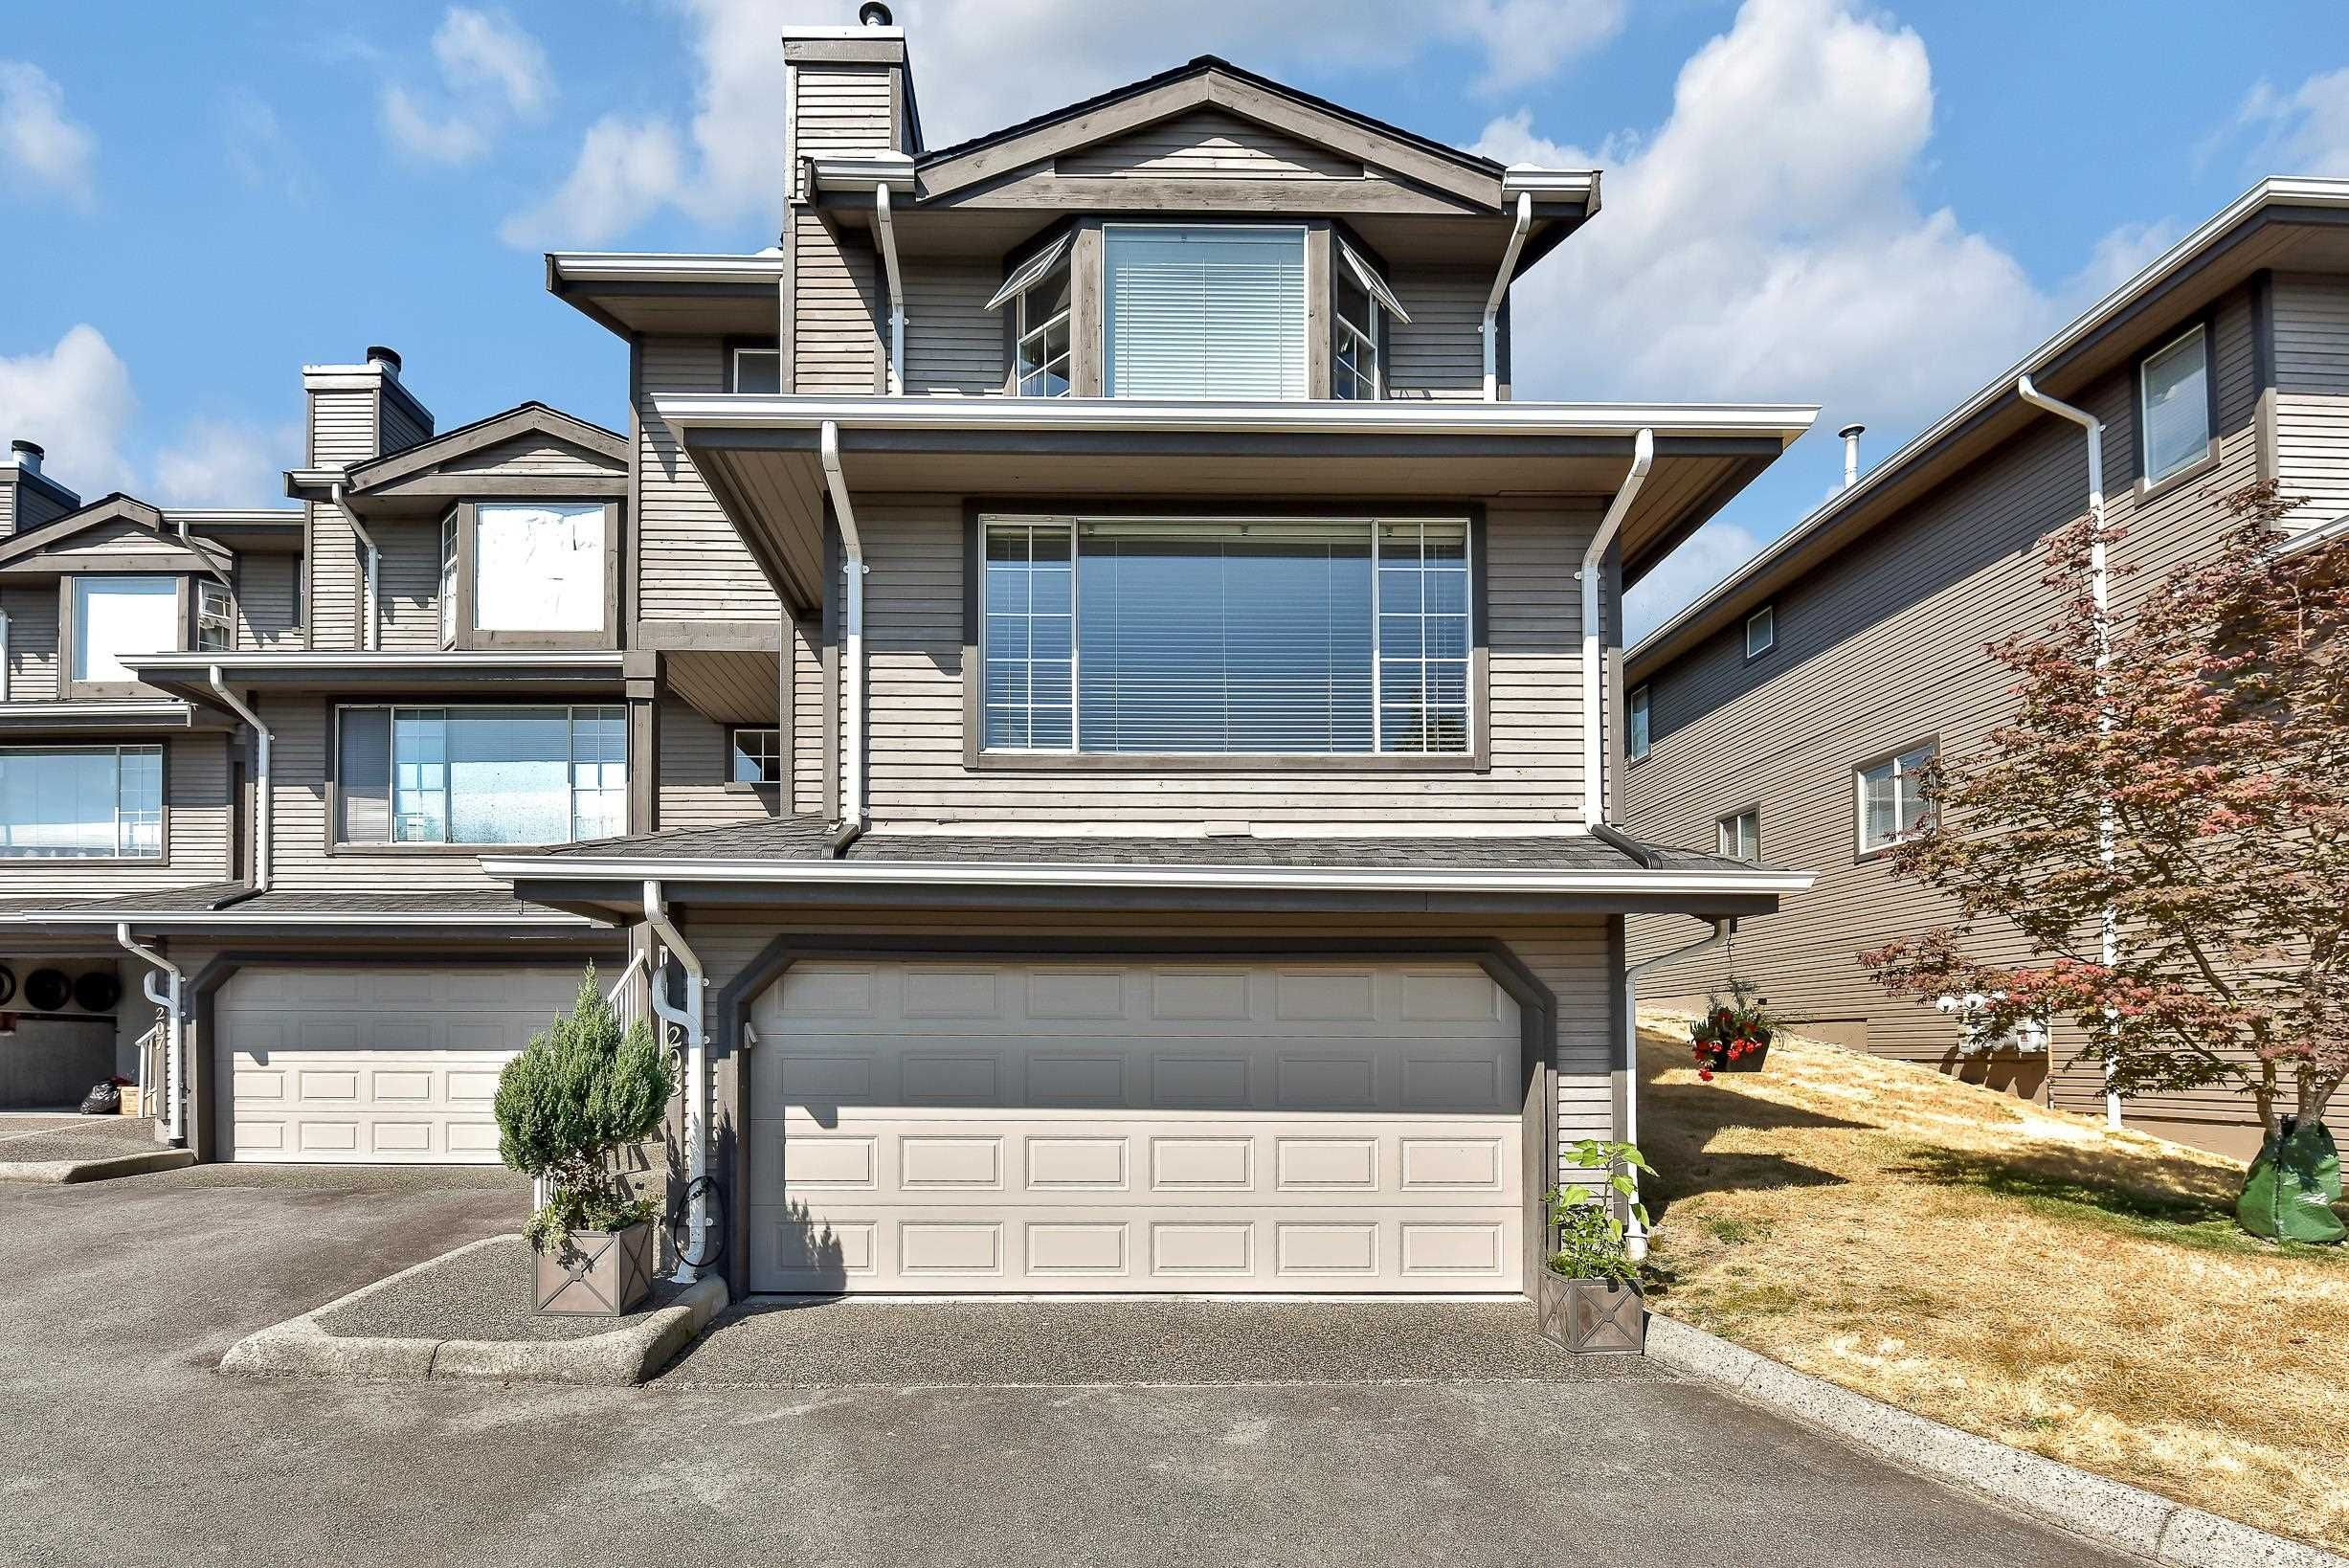 """Photo 2: Photos: 208 1140 CASTLE Crescent in Port Coquitlam: Citadel PQ Townhouse for sale in """"THE UPLANDS"""" : MLS®# R2609078"""